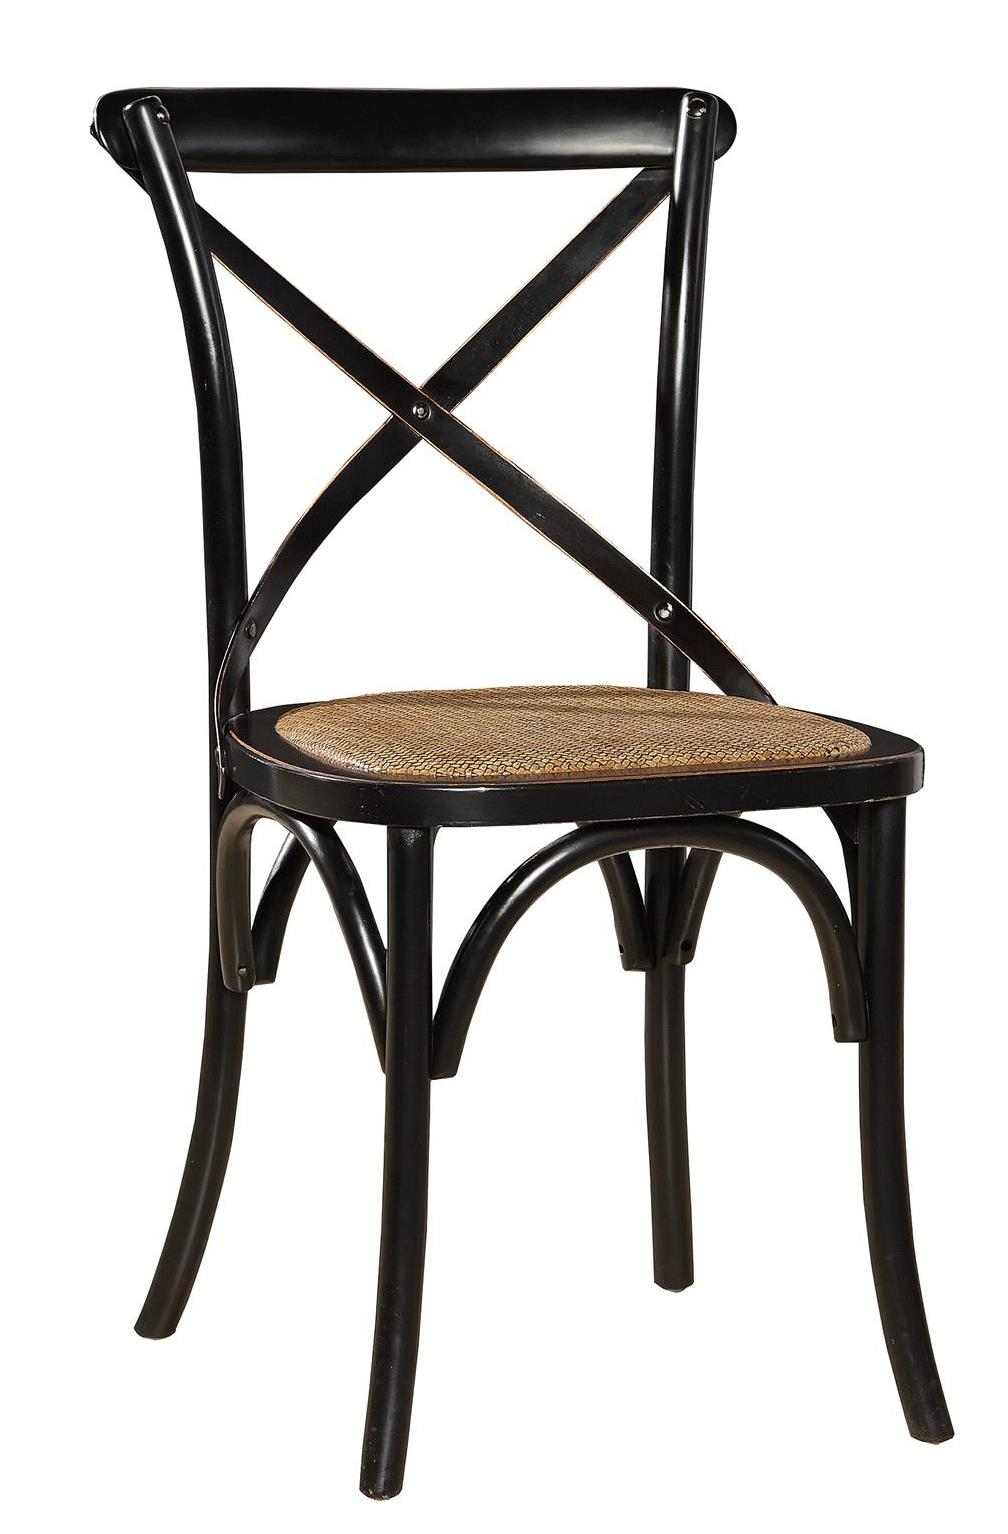 Furniture Classics Accents Dining Side Chair - Item Number: 70023BB